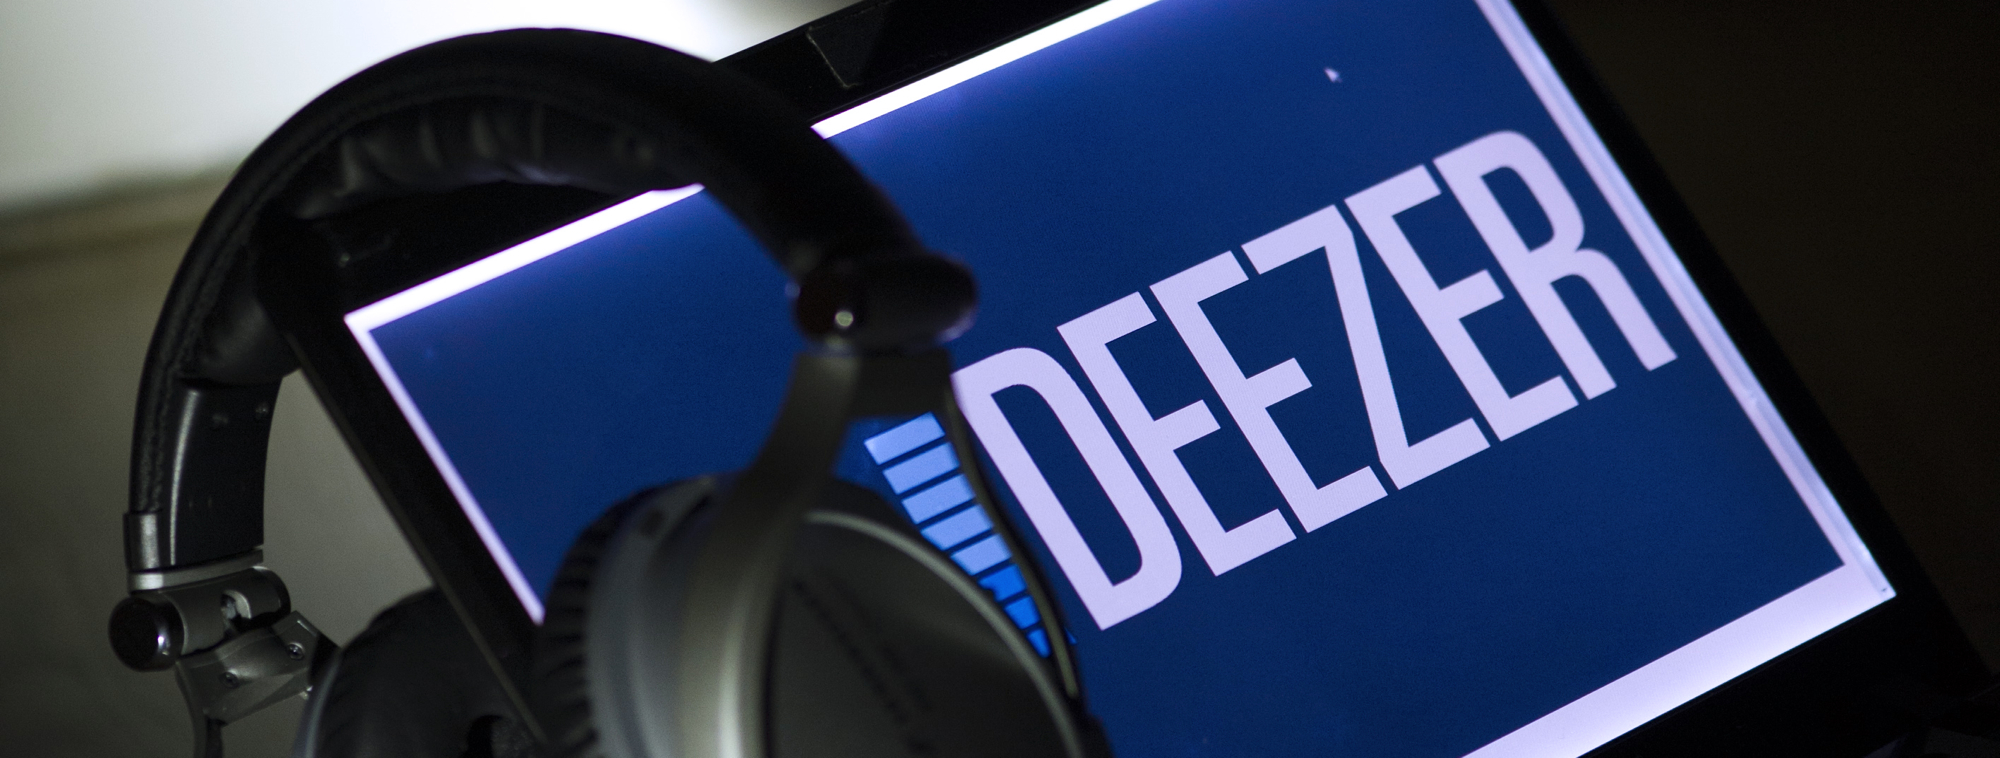 Samsung & Deezer Tempt Music Fans in Europe